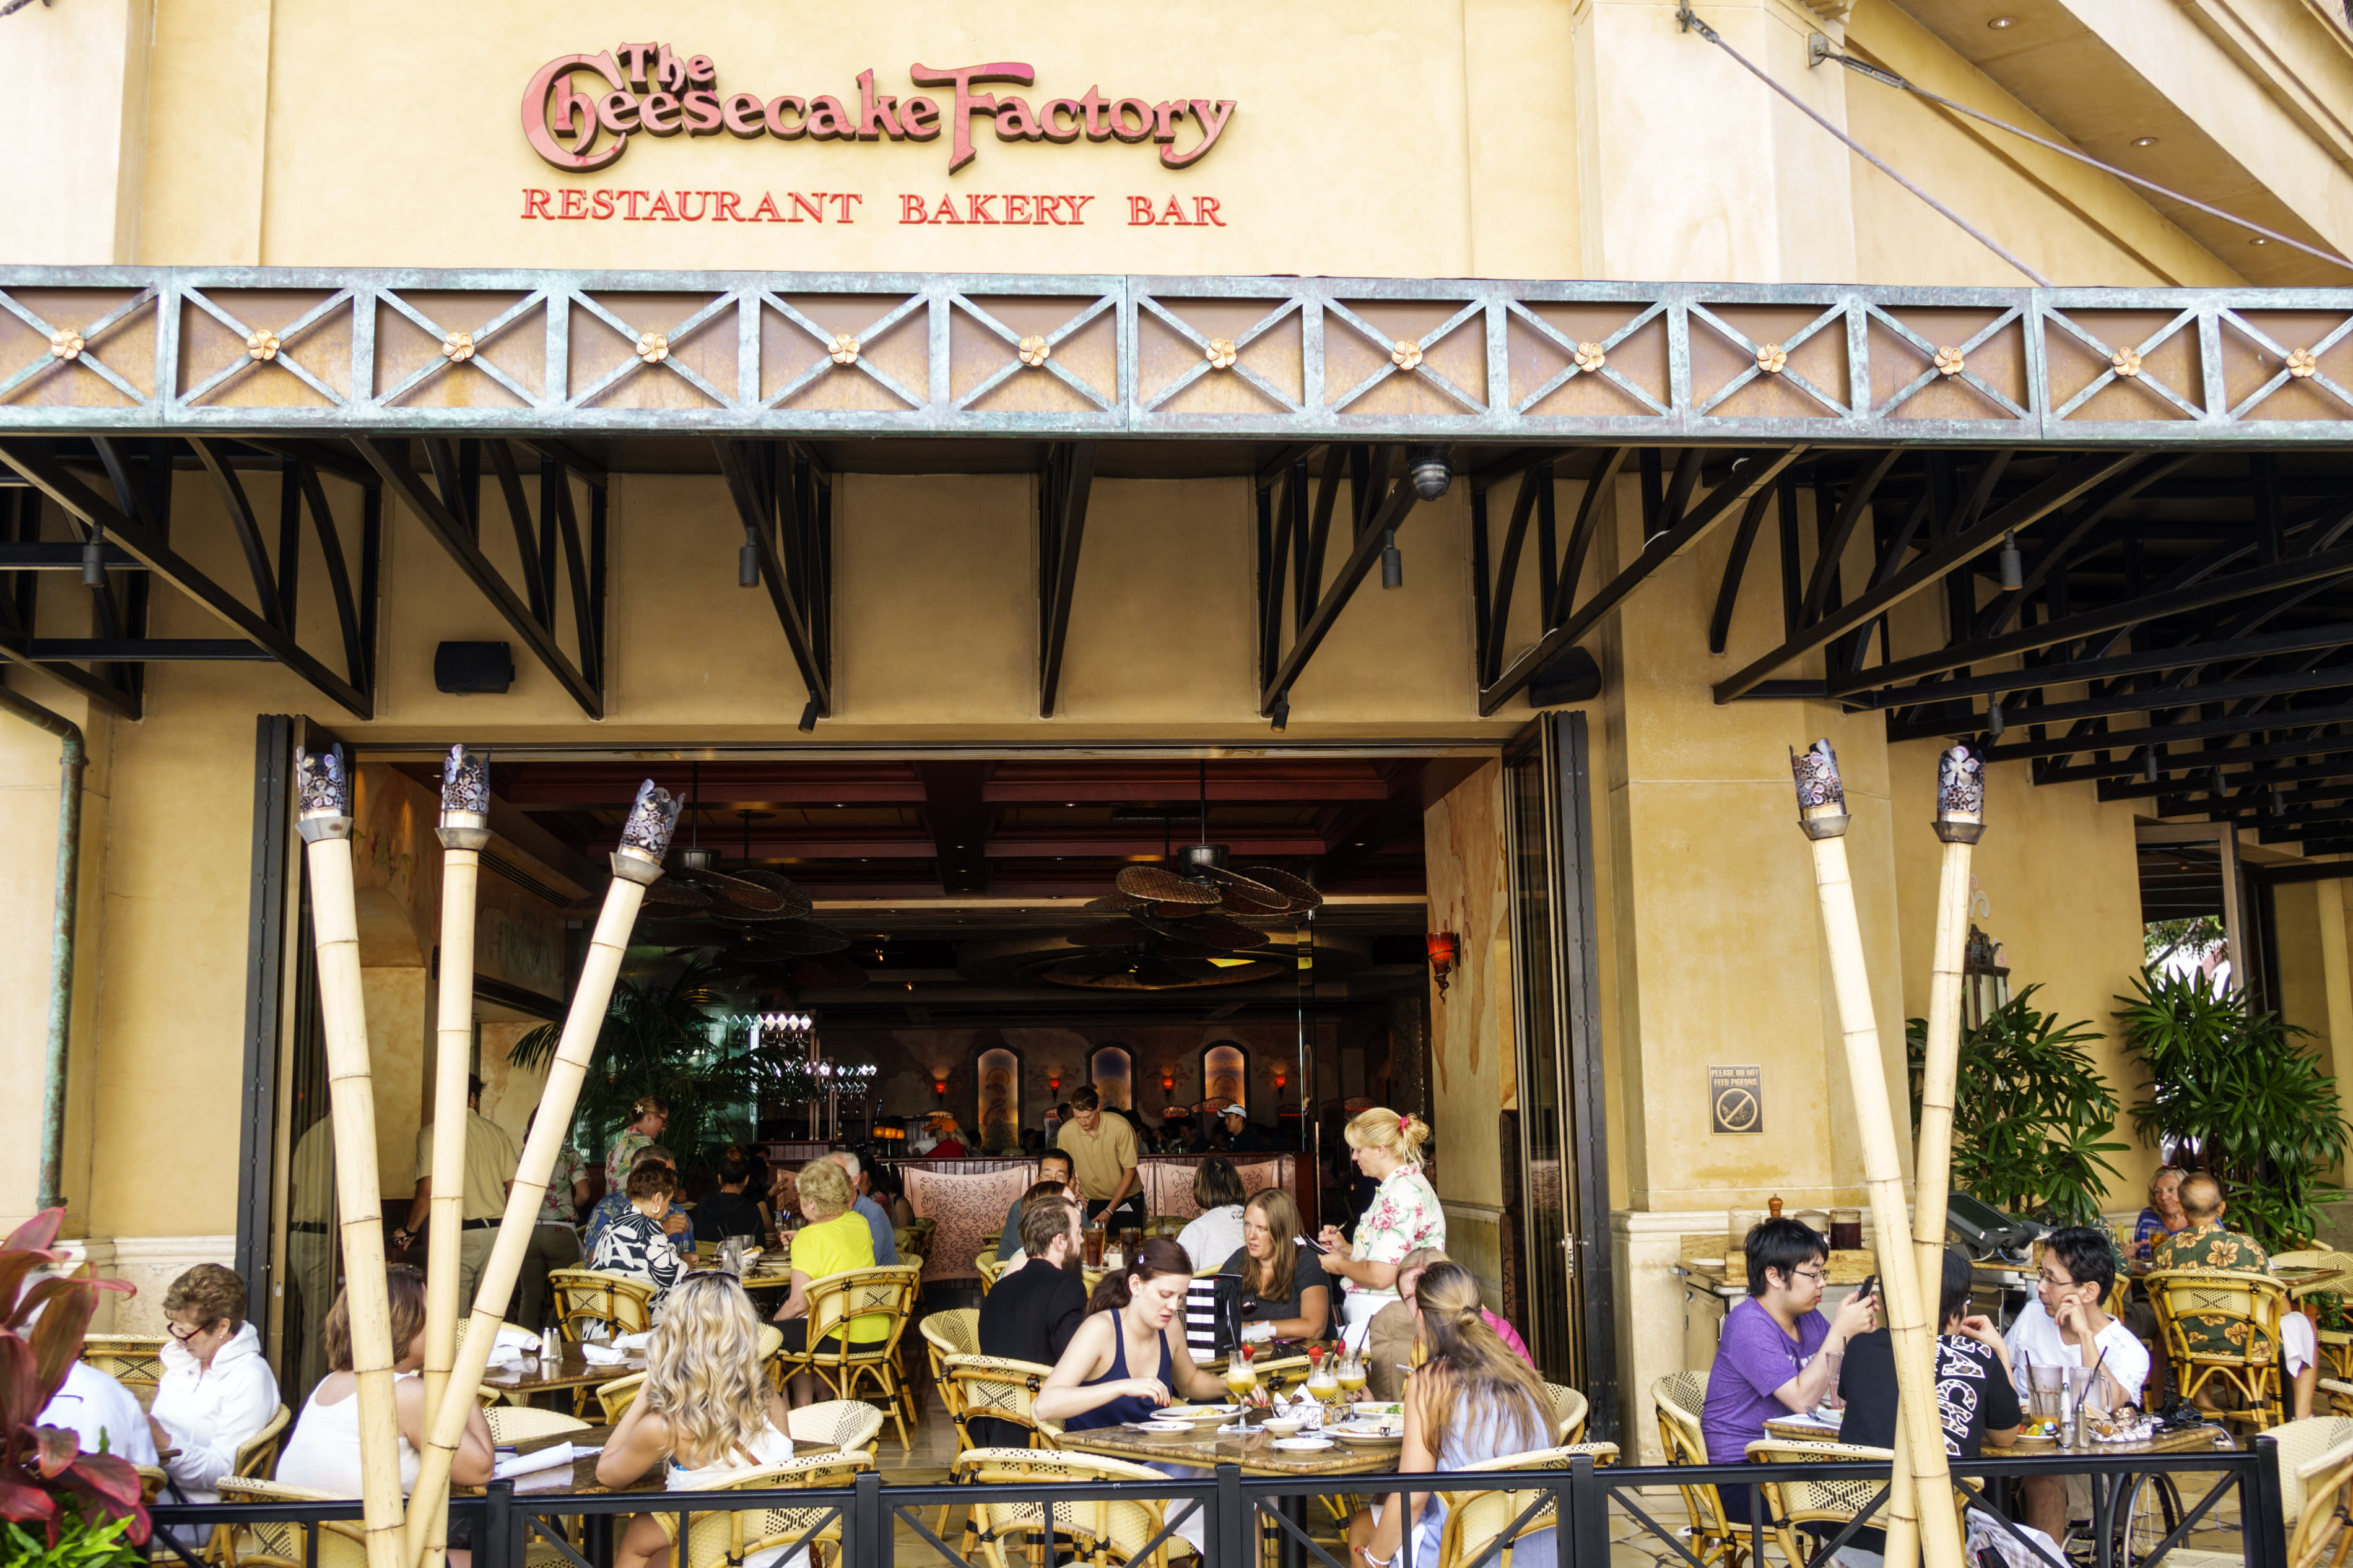 5 Clever Ways to Save Money at the Cheesecake Factory, According to ...